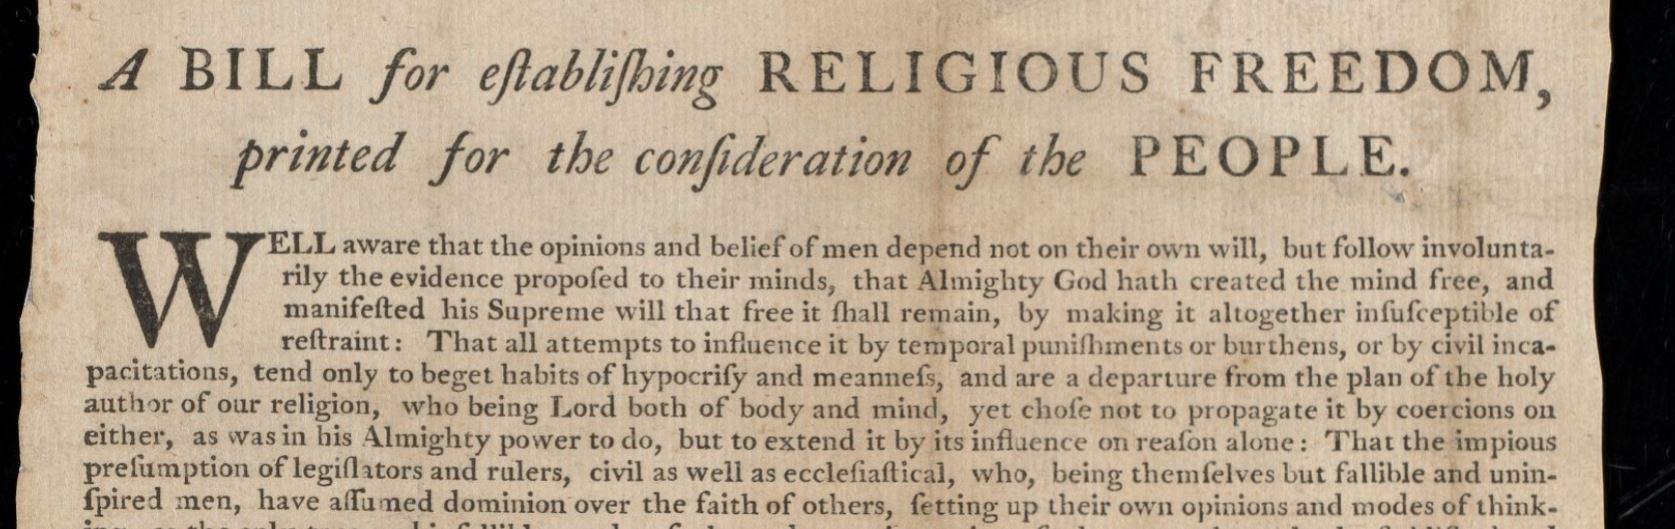 Beatings of Baptist ministers were among the incidents that led Thomas Jefferson to publish a broadside in Williamsburg in 1779 about a bill to establish religious freedom in Virginia, and for James Madison to later propose an amendment to the US Constitution guaranteeing religious freedom.